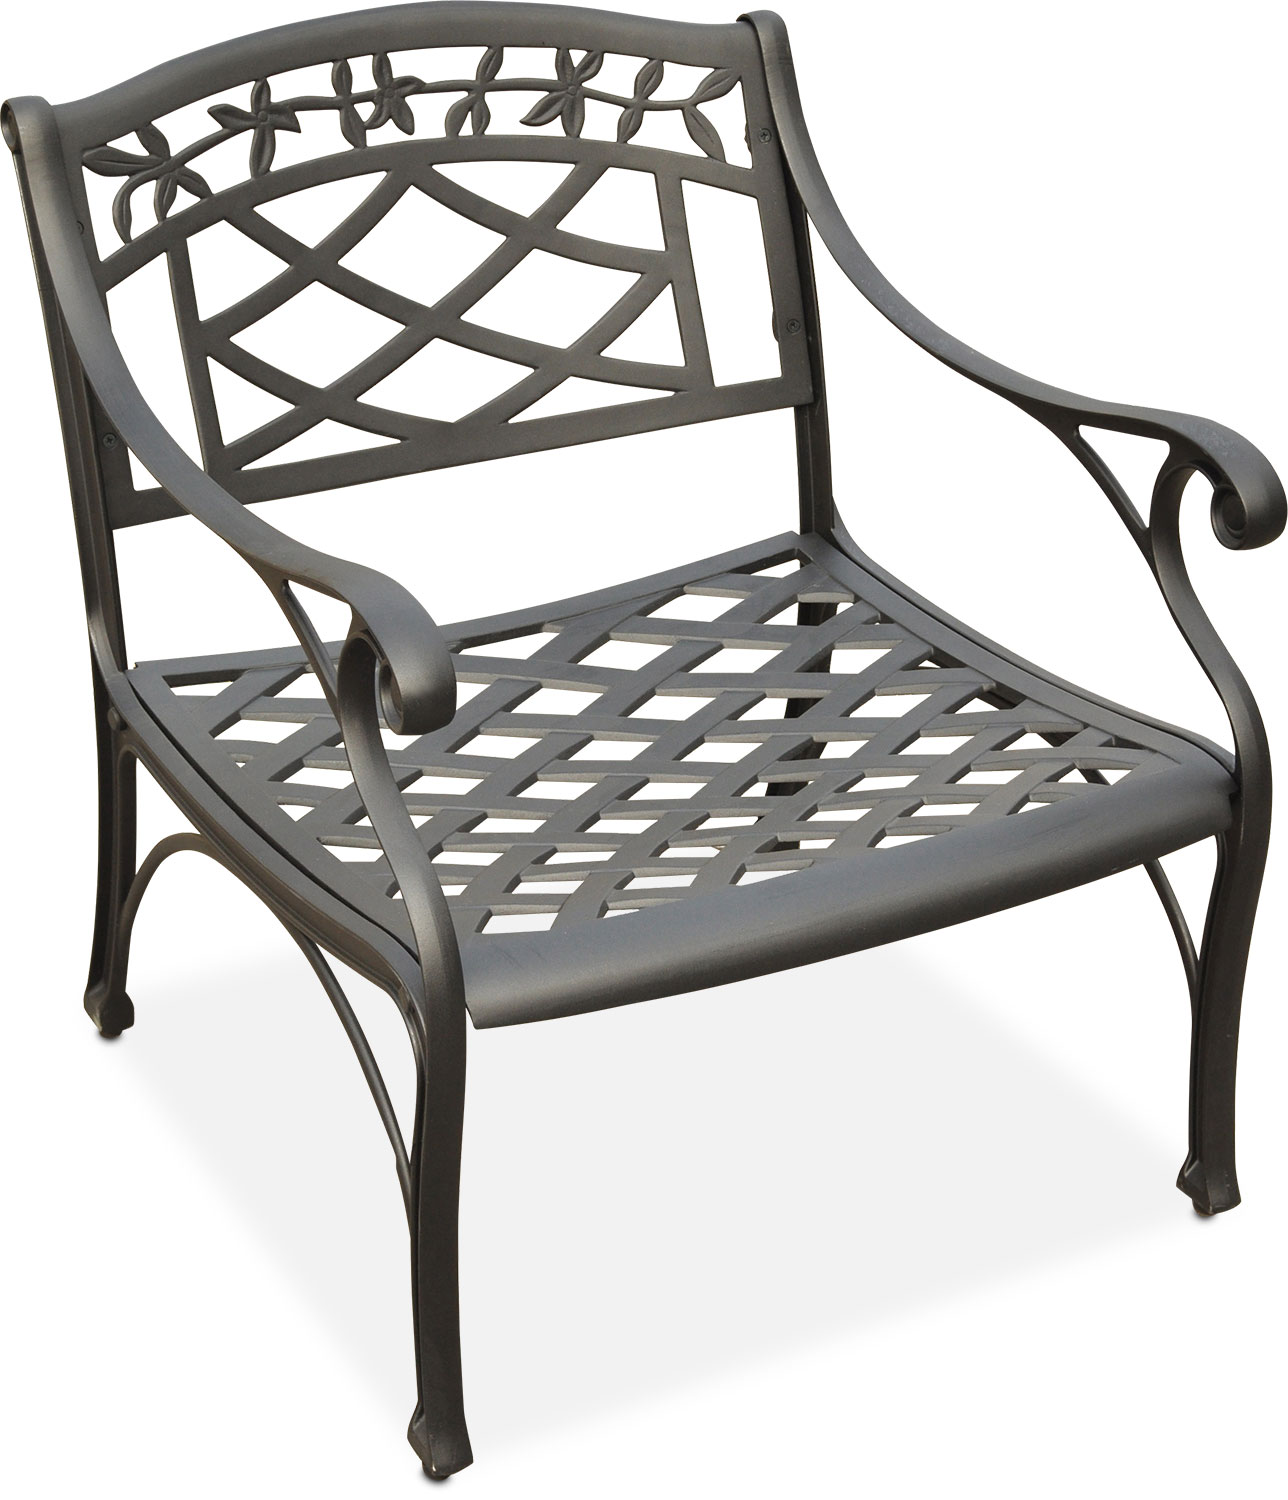 Charmant Outdoor Furniture   Hana Outdoor Chair   Black